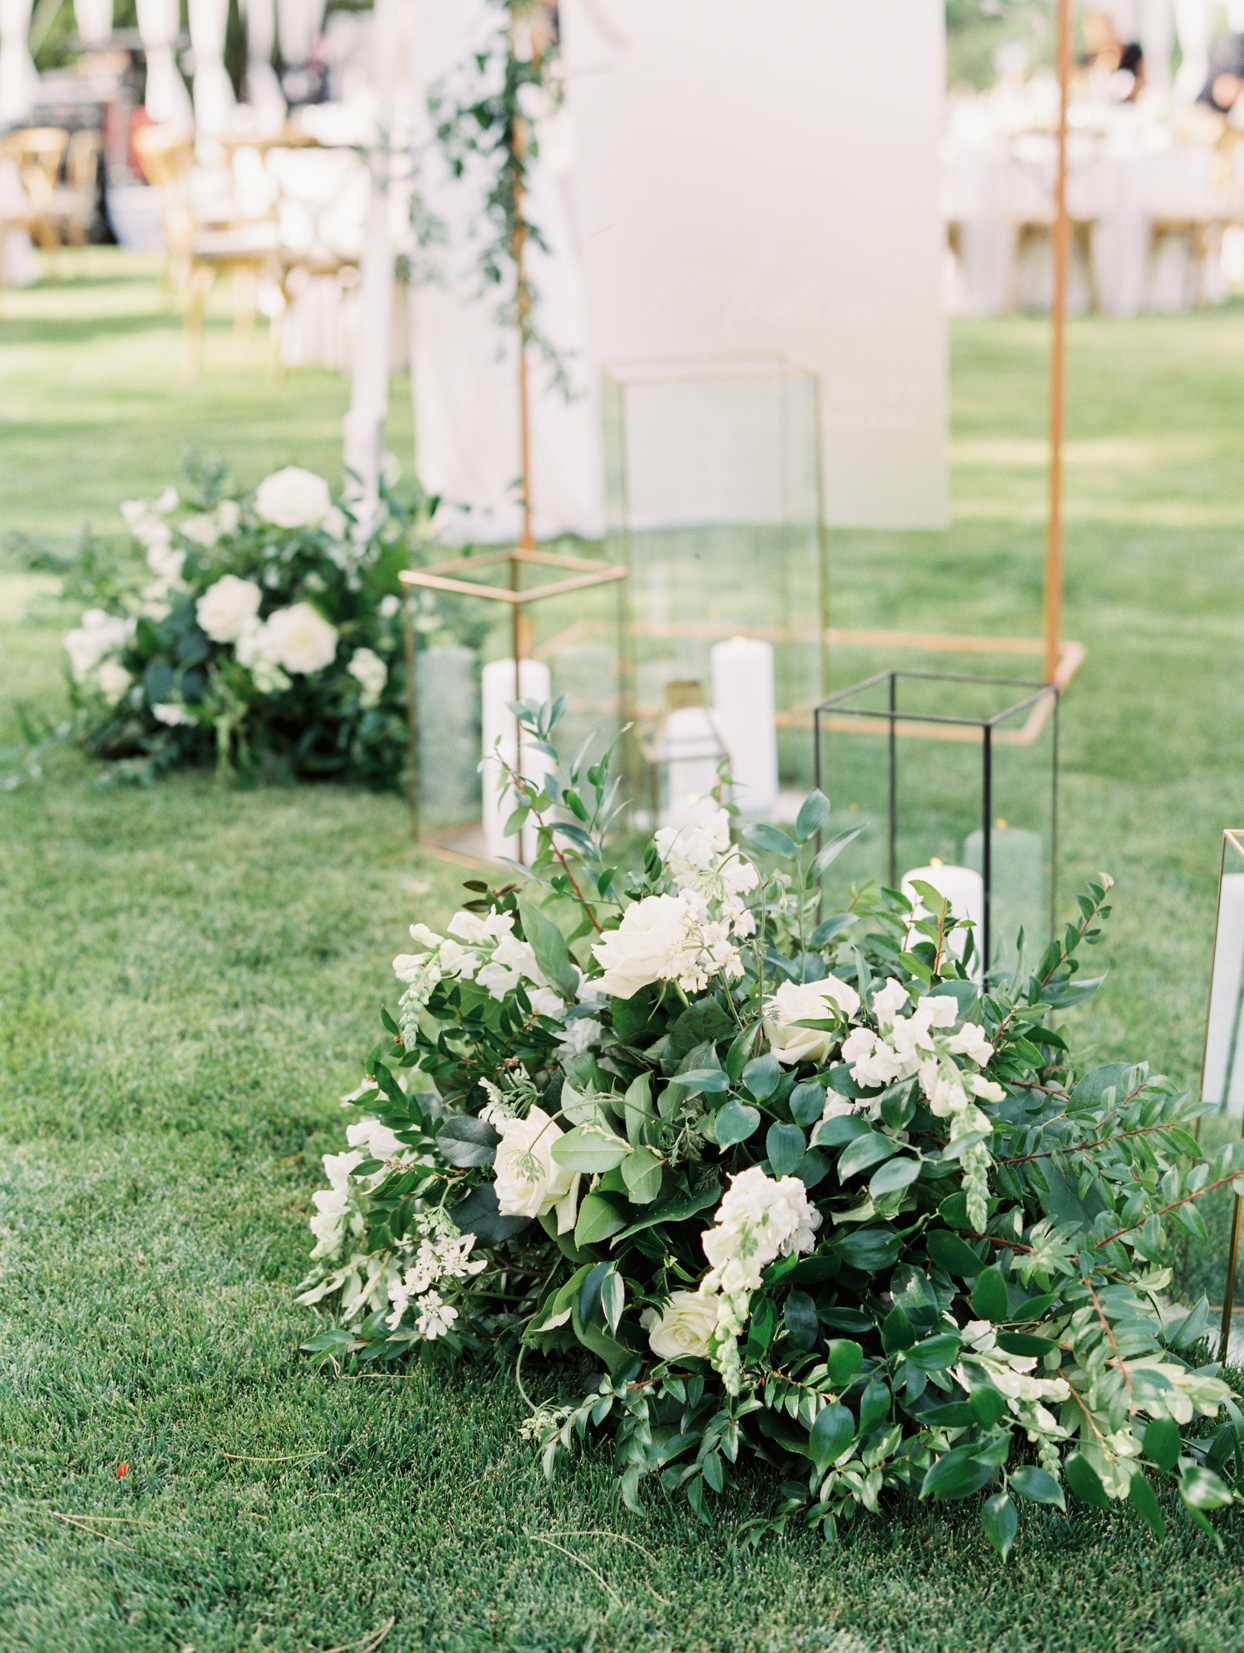 glass candle lanterns on grass with floral and greenery arrangements